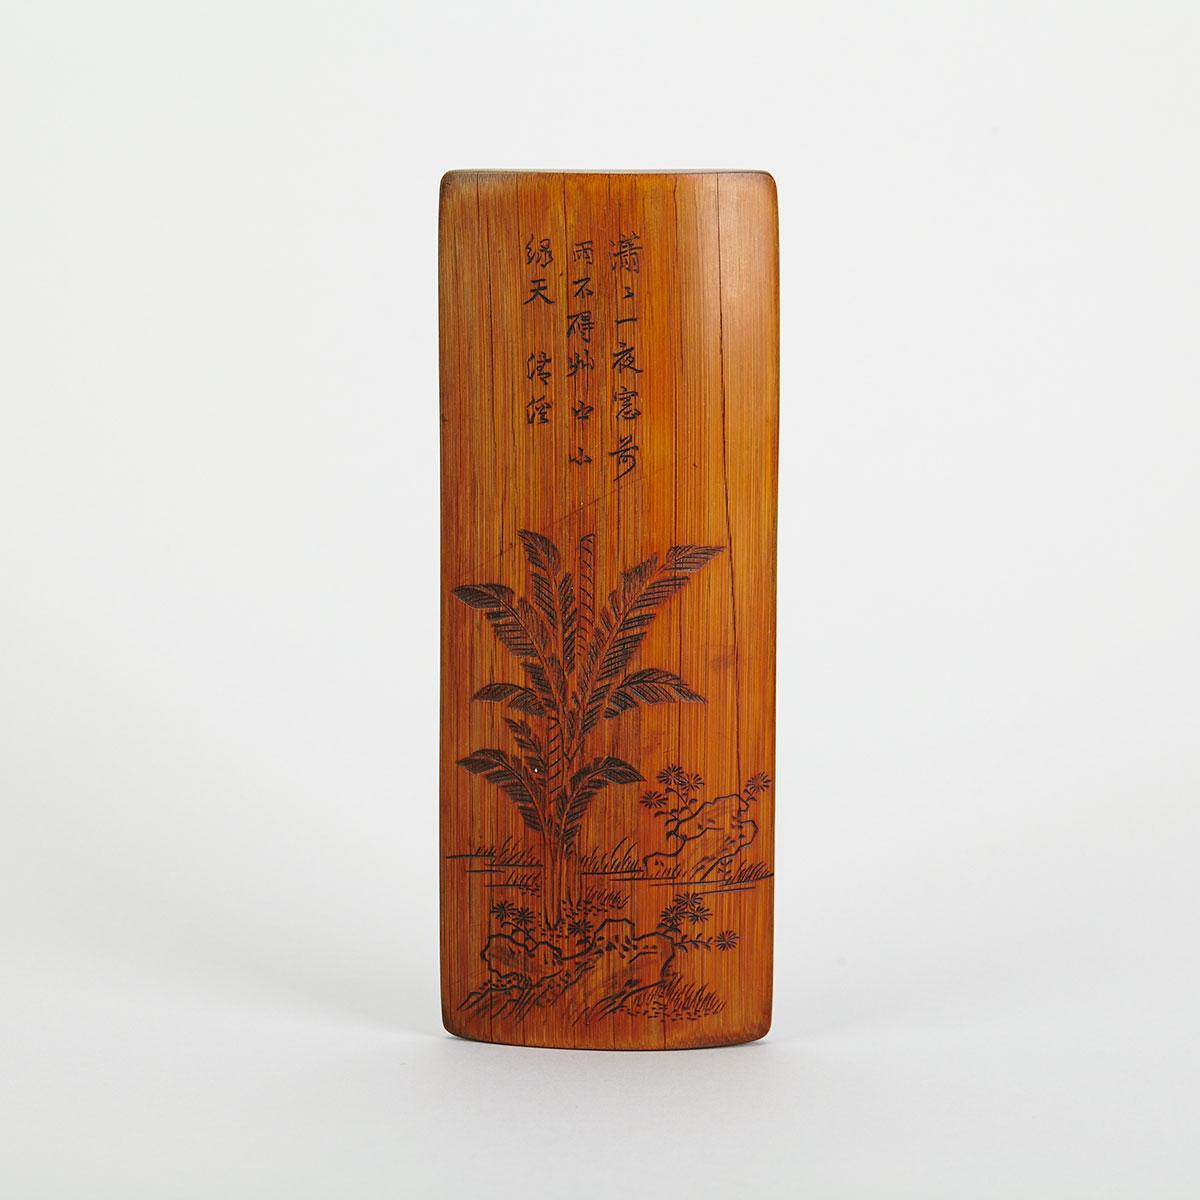 Inscribed Bamboo Wrist Rest